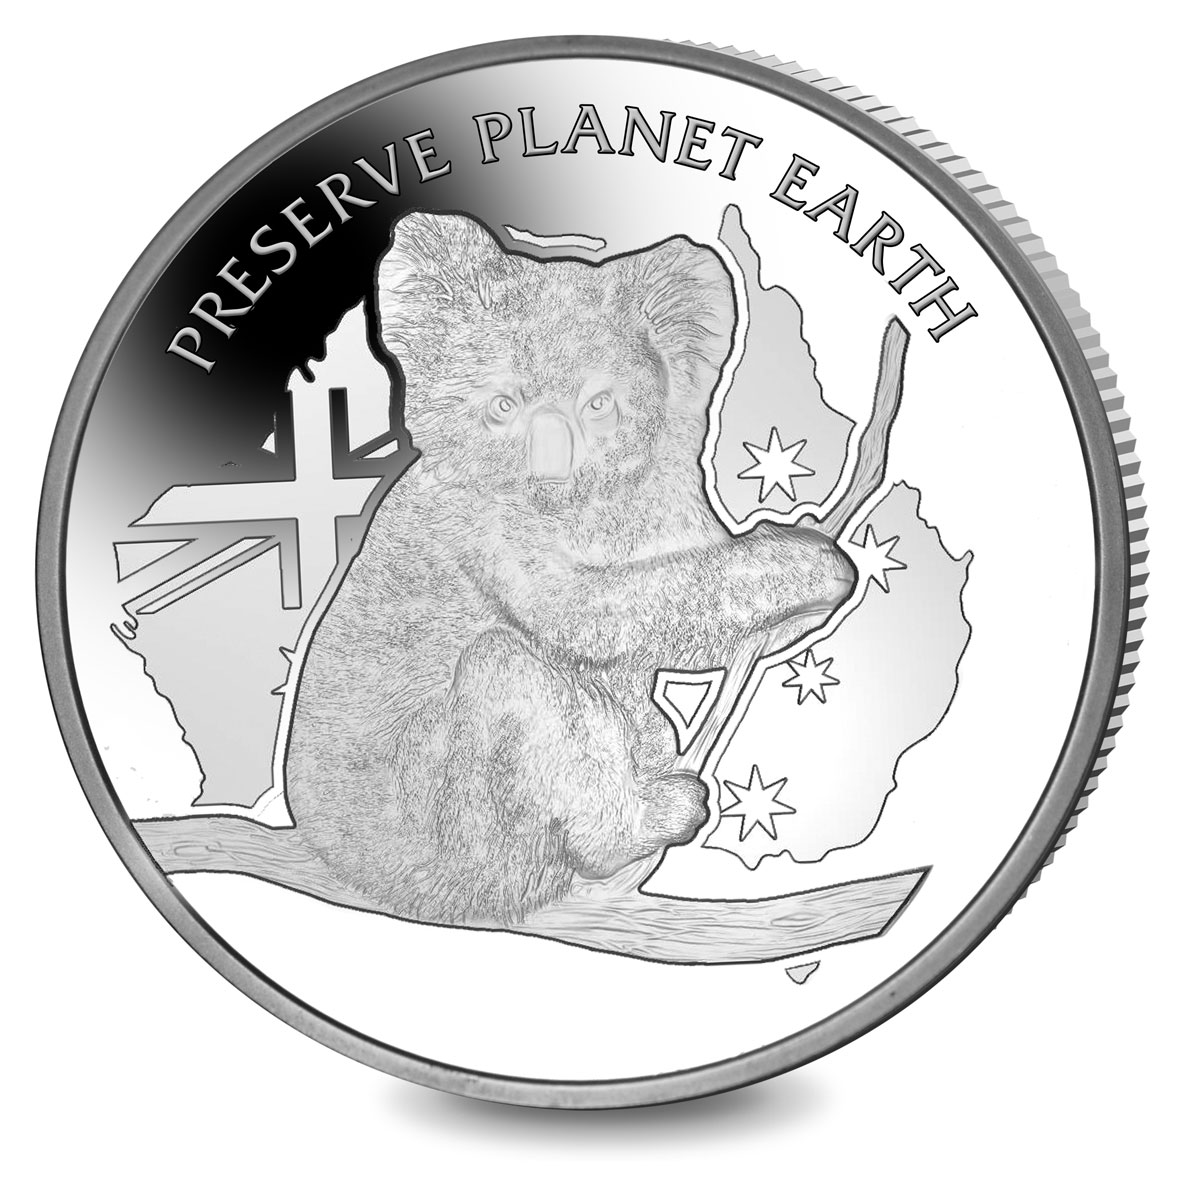 2020 Niue Koala Preserve Planet Earth High Relief 2 oz Silver Proof $2 Coin GEM Proof